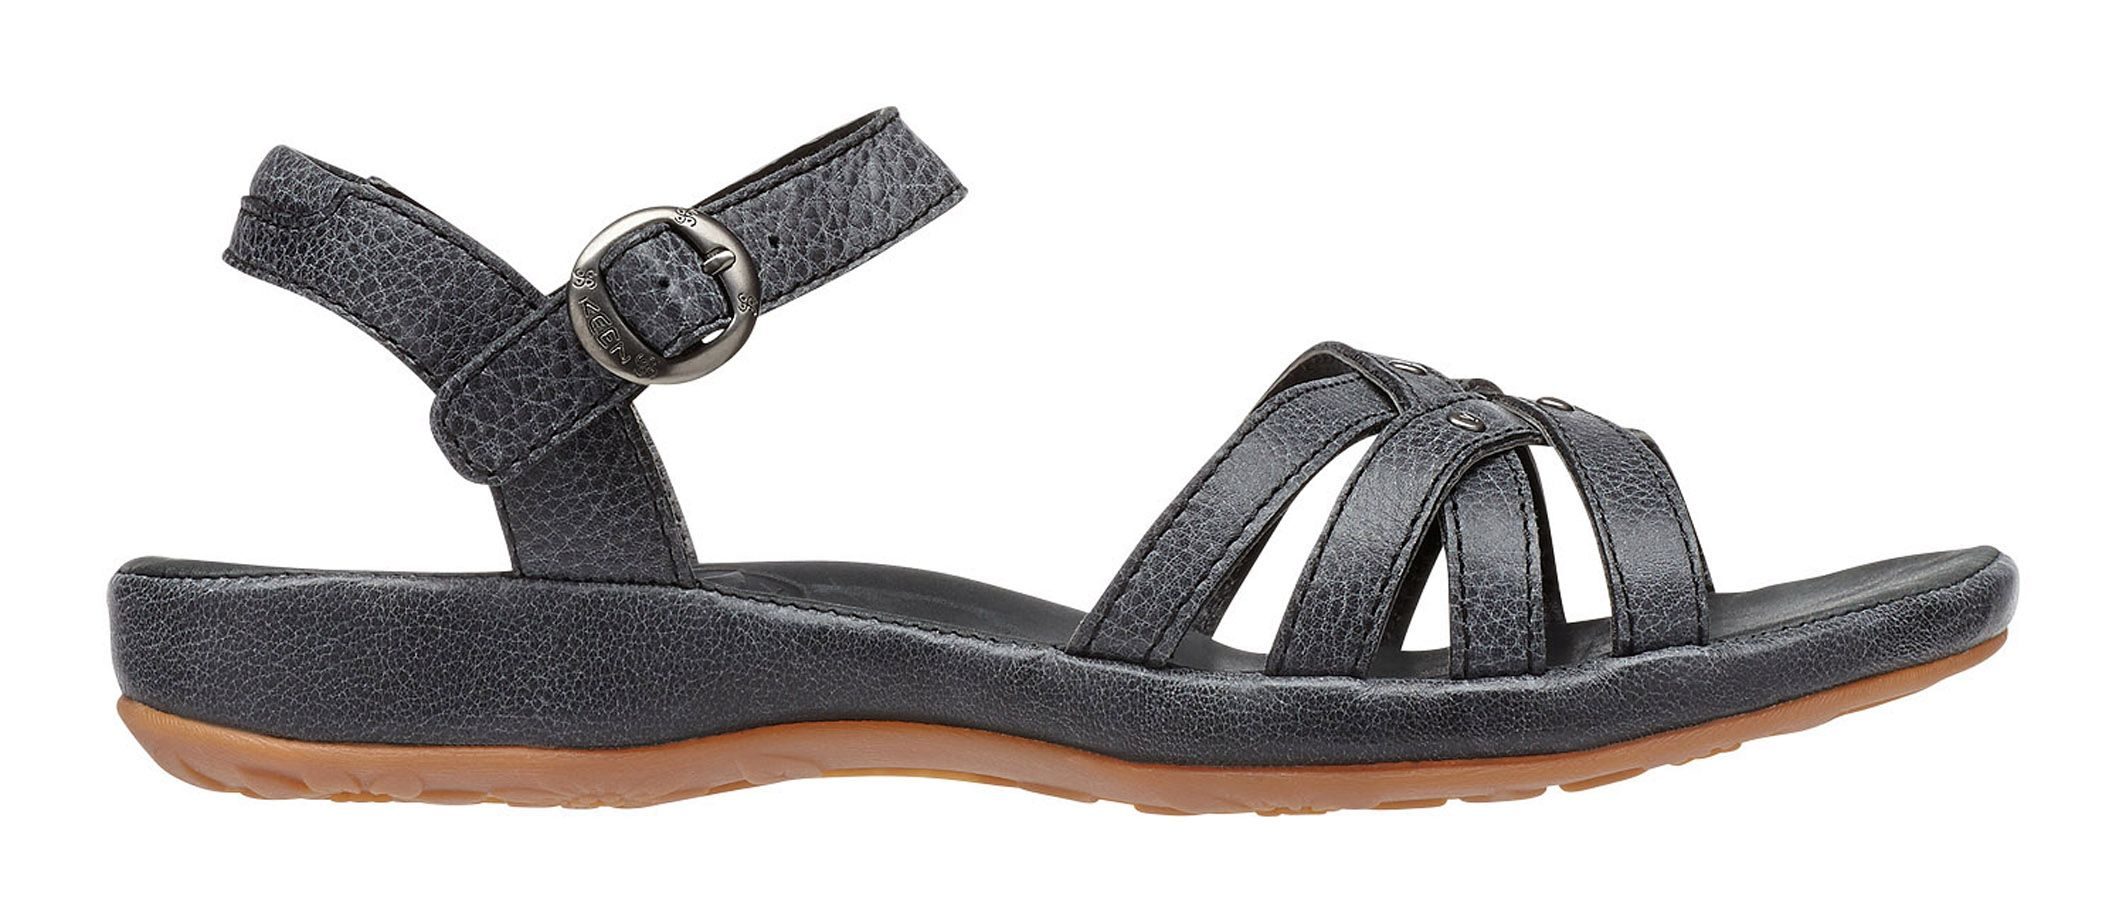 Keen City Of Palms Sandal Solid Black-30